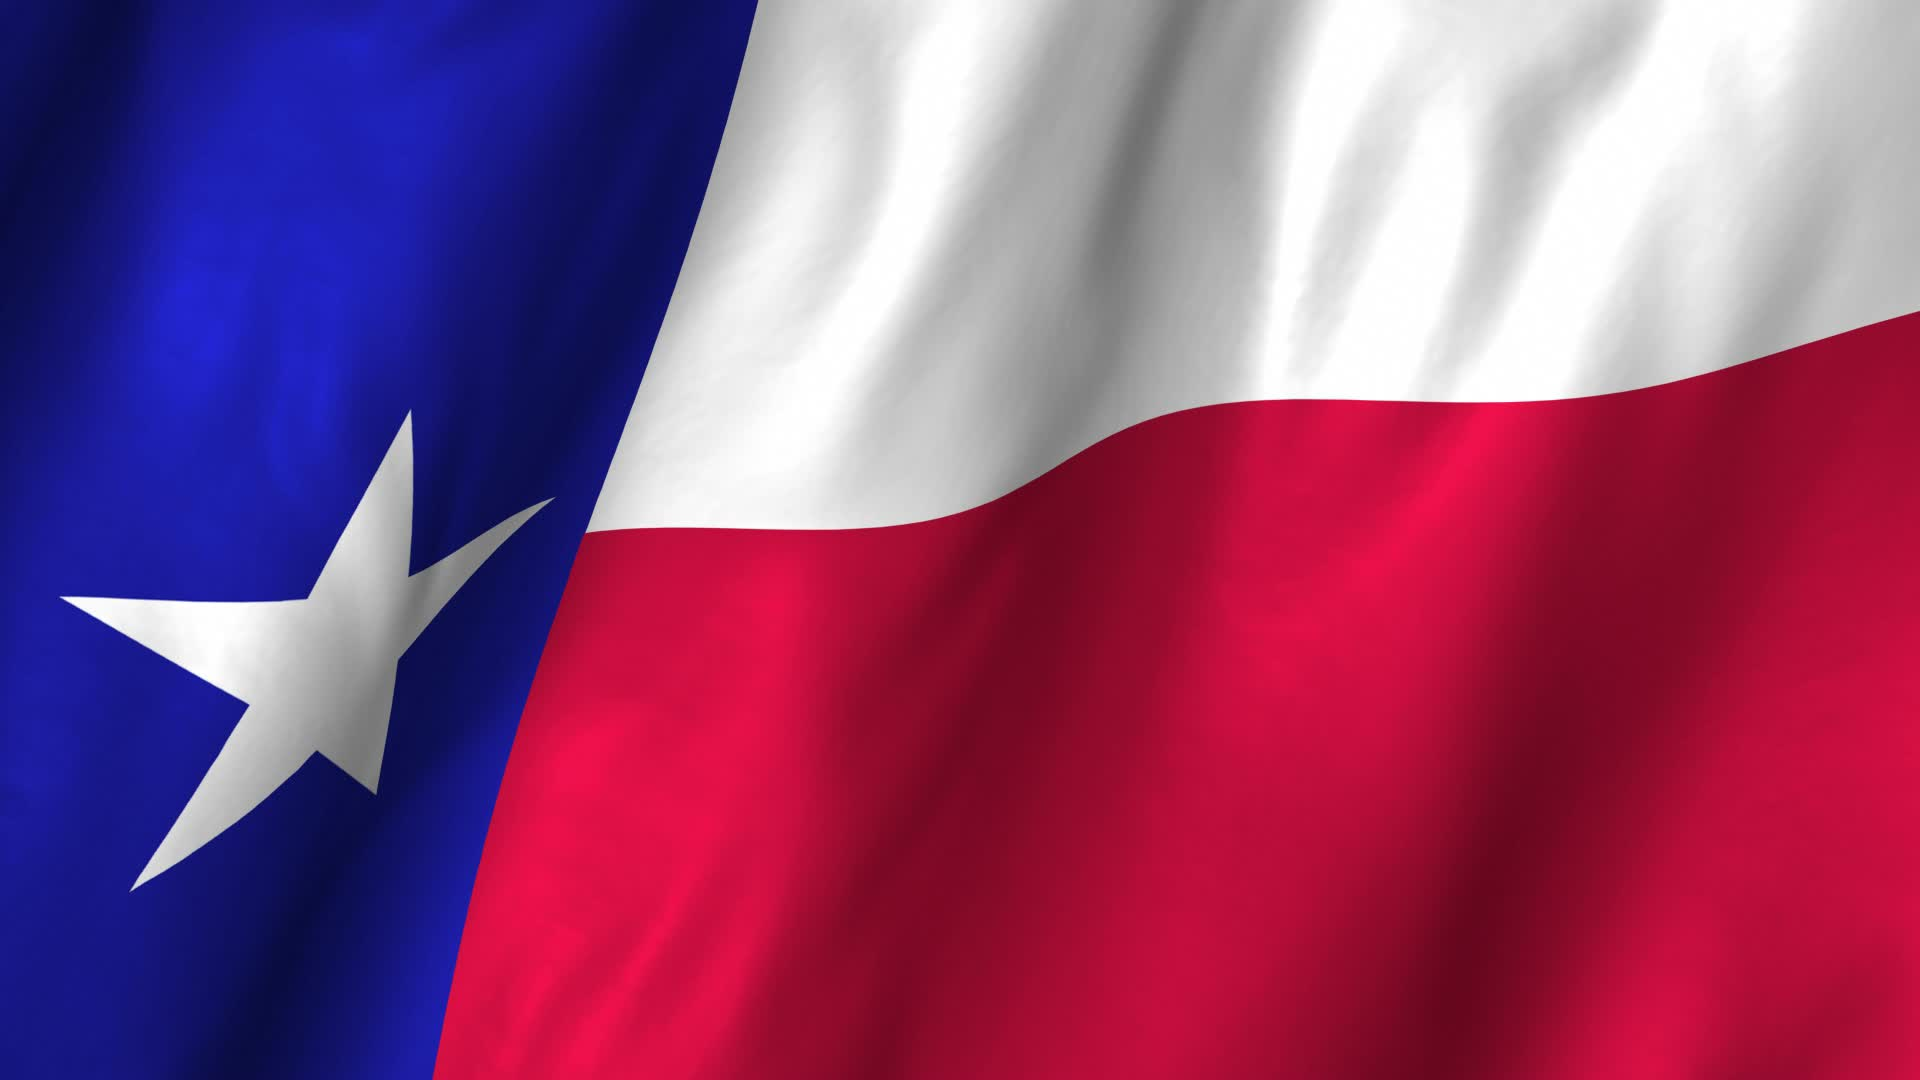 Showing Gallery For Texas Flag Wallpaper Hd 1920x1080